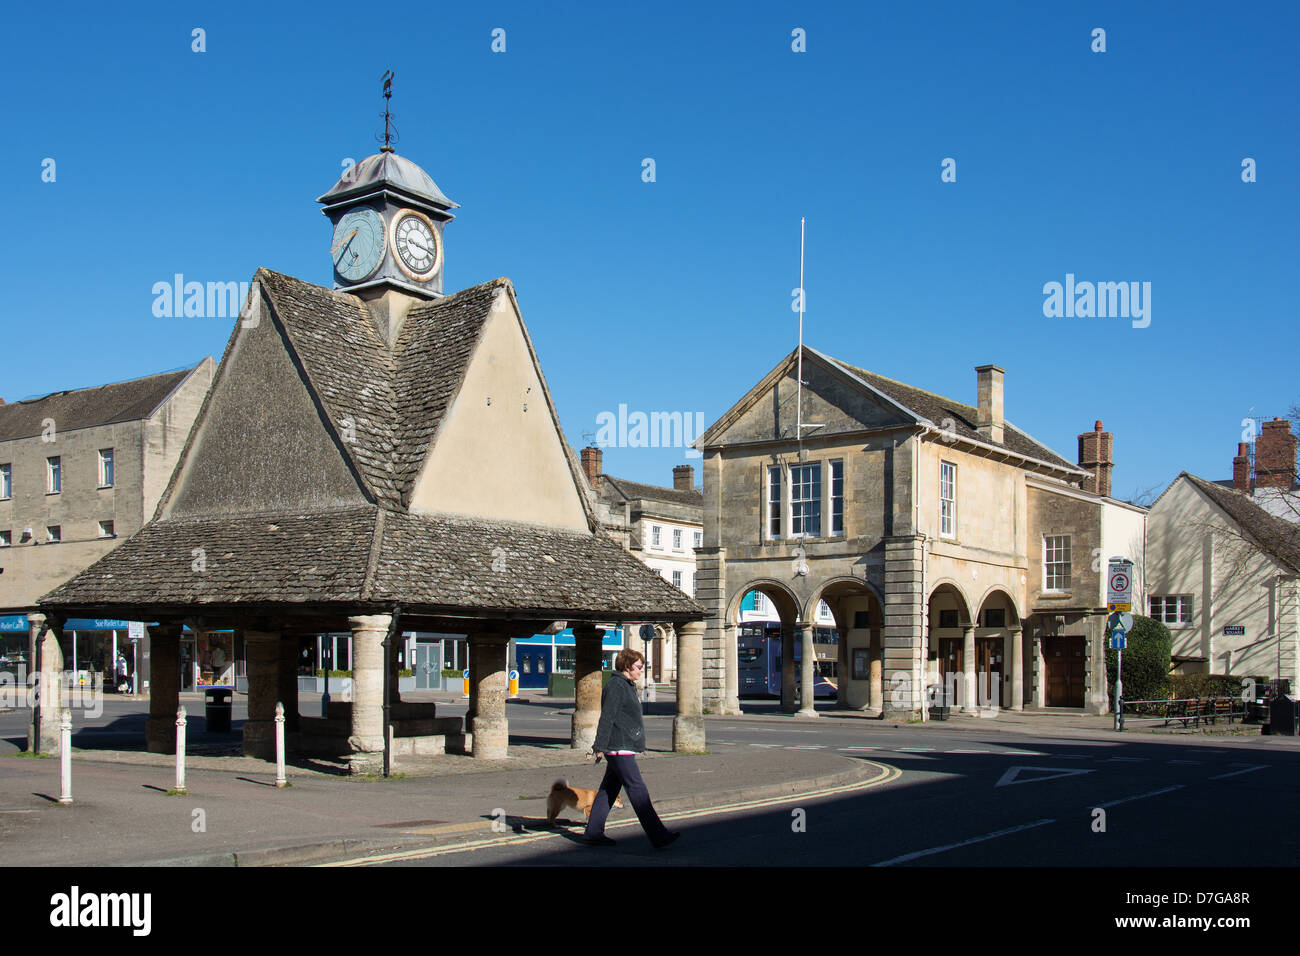 WITNEY, OXFORDSHIRE, UK. The Buttercross and town hall in the town centre. 2013. - Stock Image